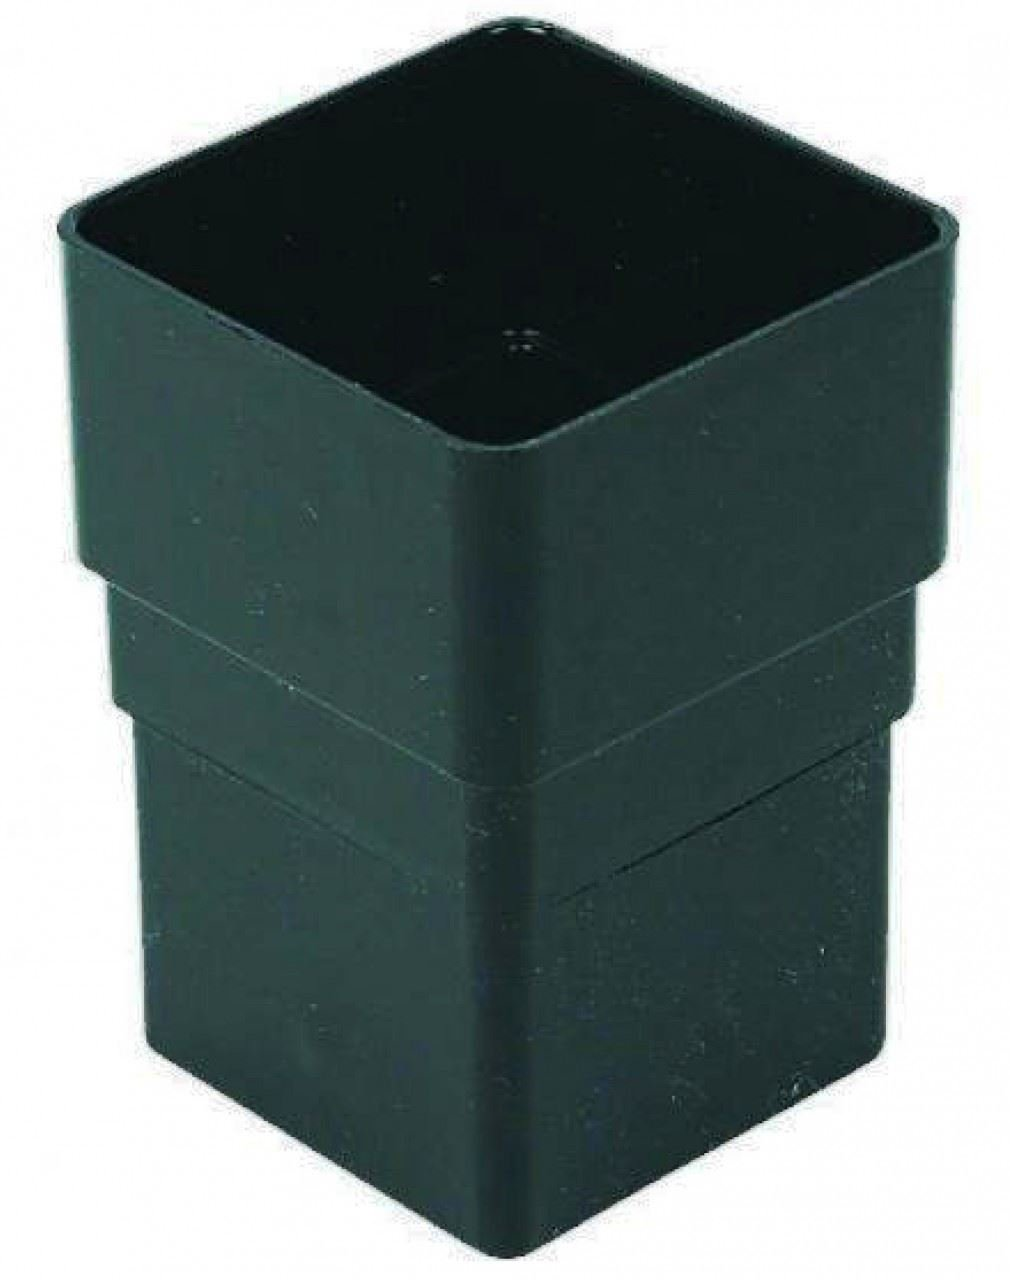 FLOPLAST 65mm Square Downpipe Socket - Black - Pack of 2